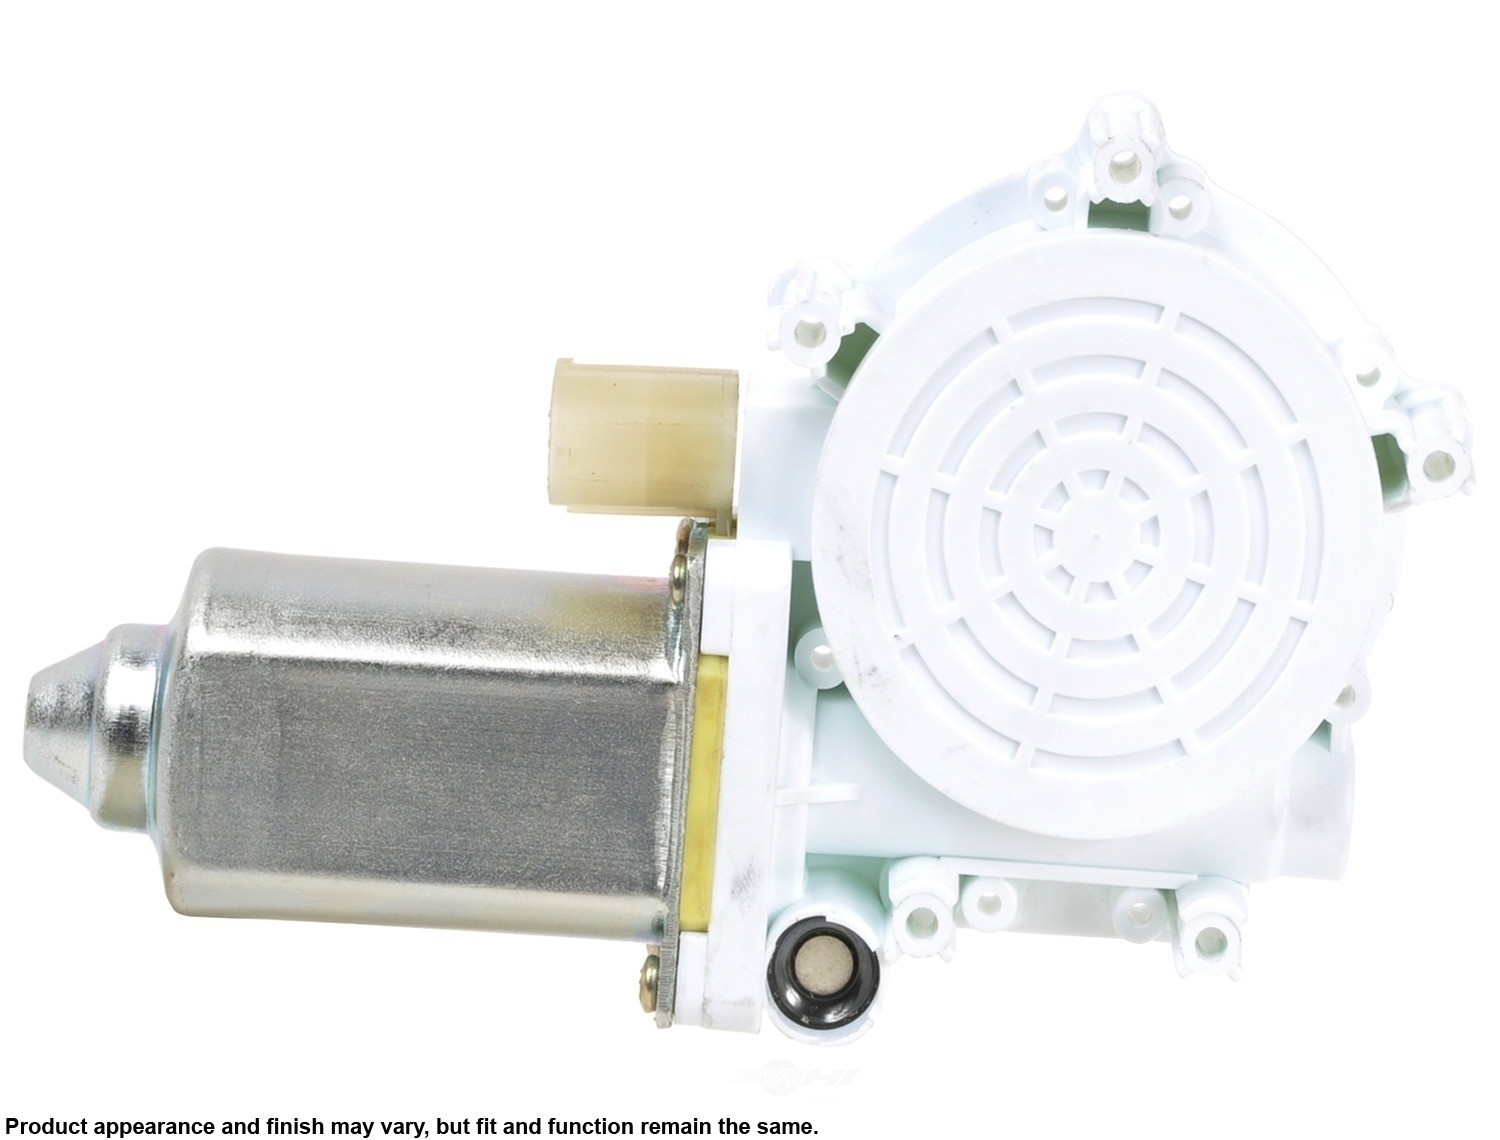 CARDONE NEW - Window Lift Motor (Front Left) - A1S 82-2134